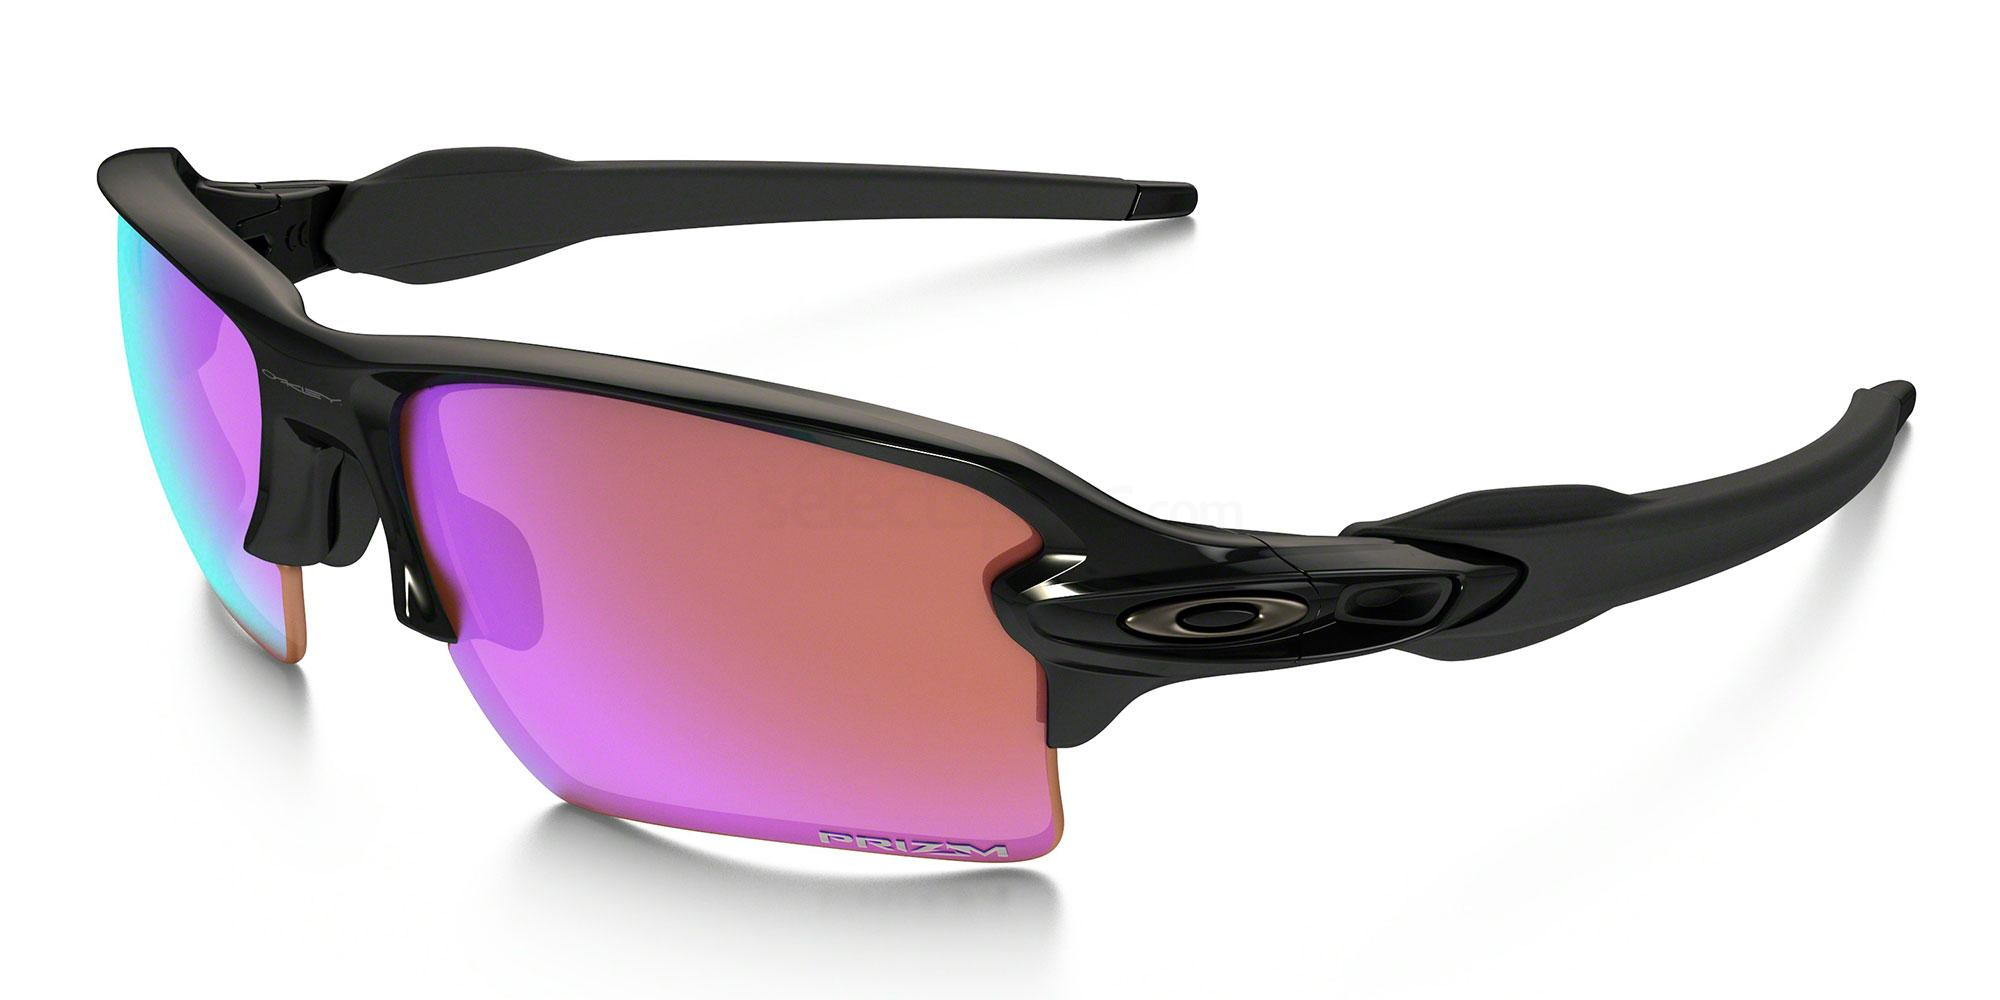 Oakley OO9188 Prizm Golf Flak 2.0 as worn by Bubba Watson